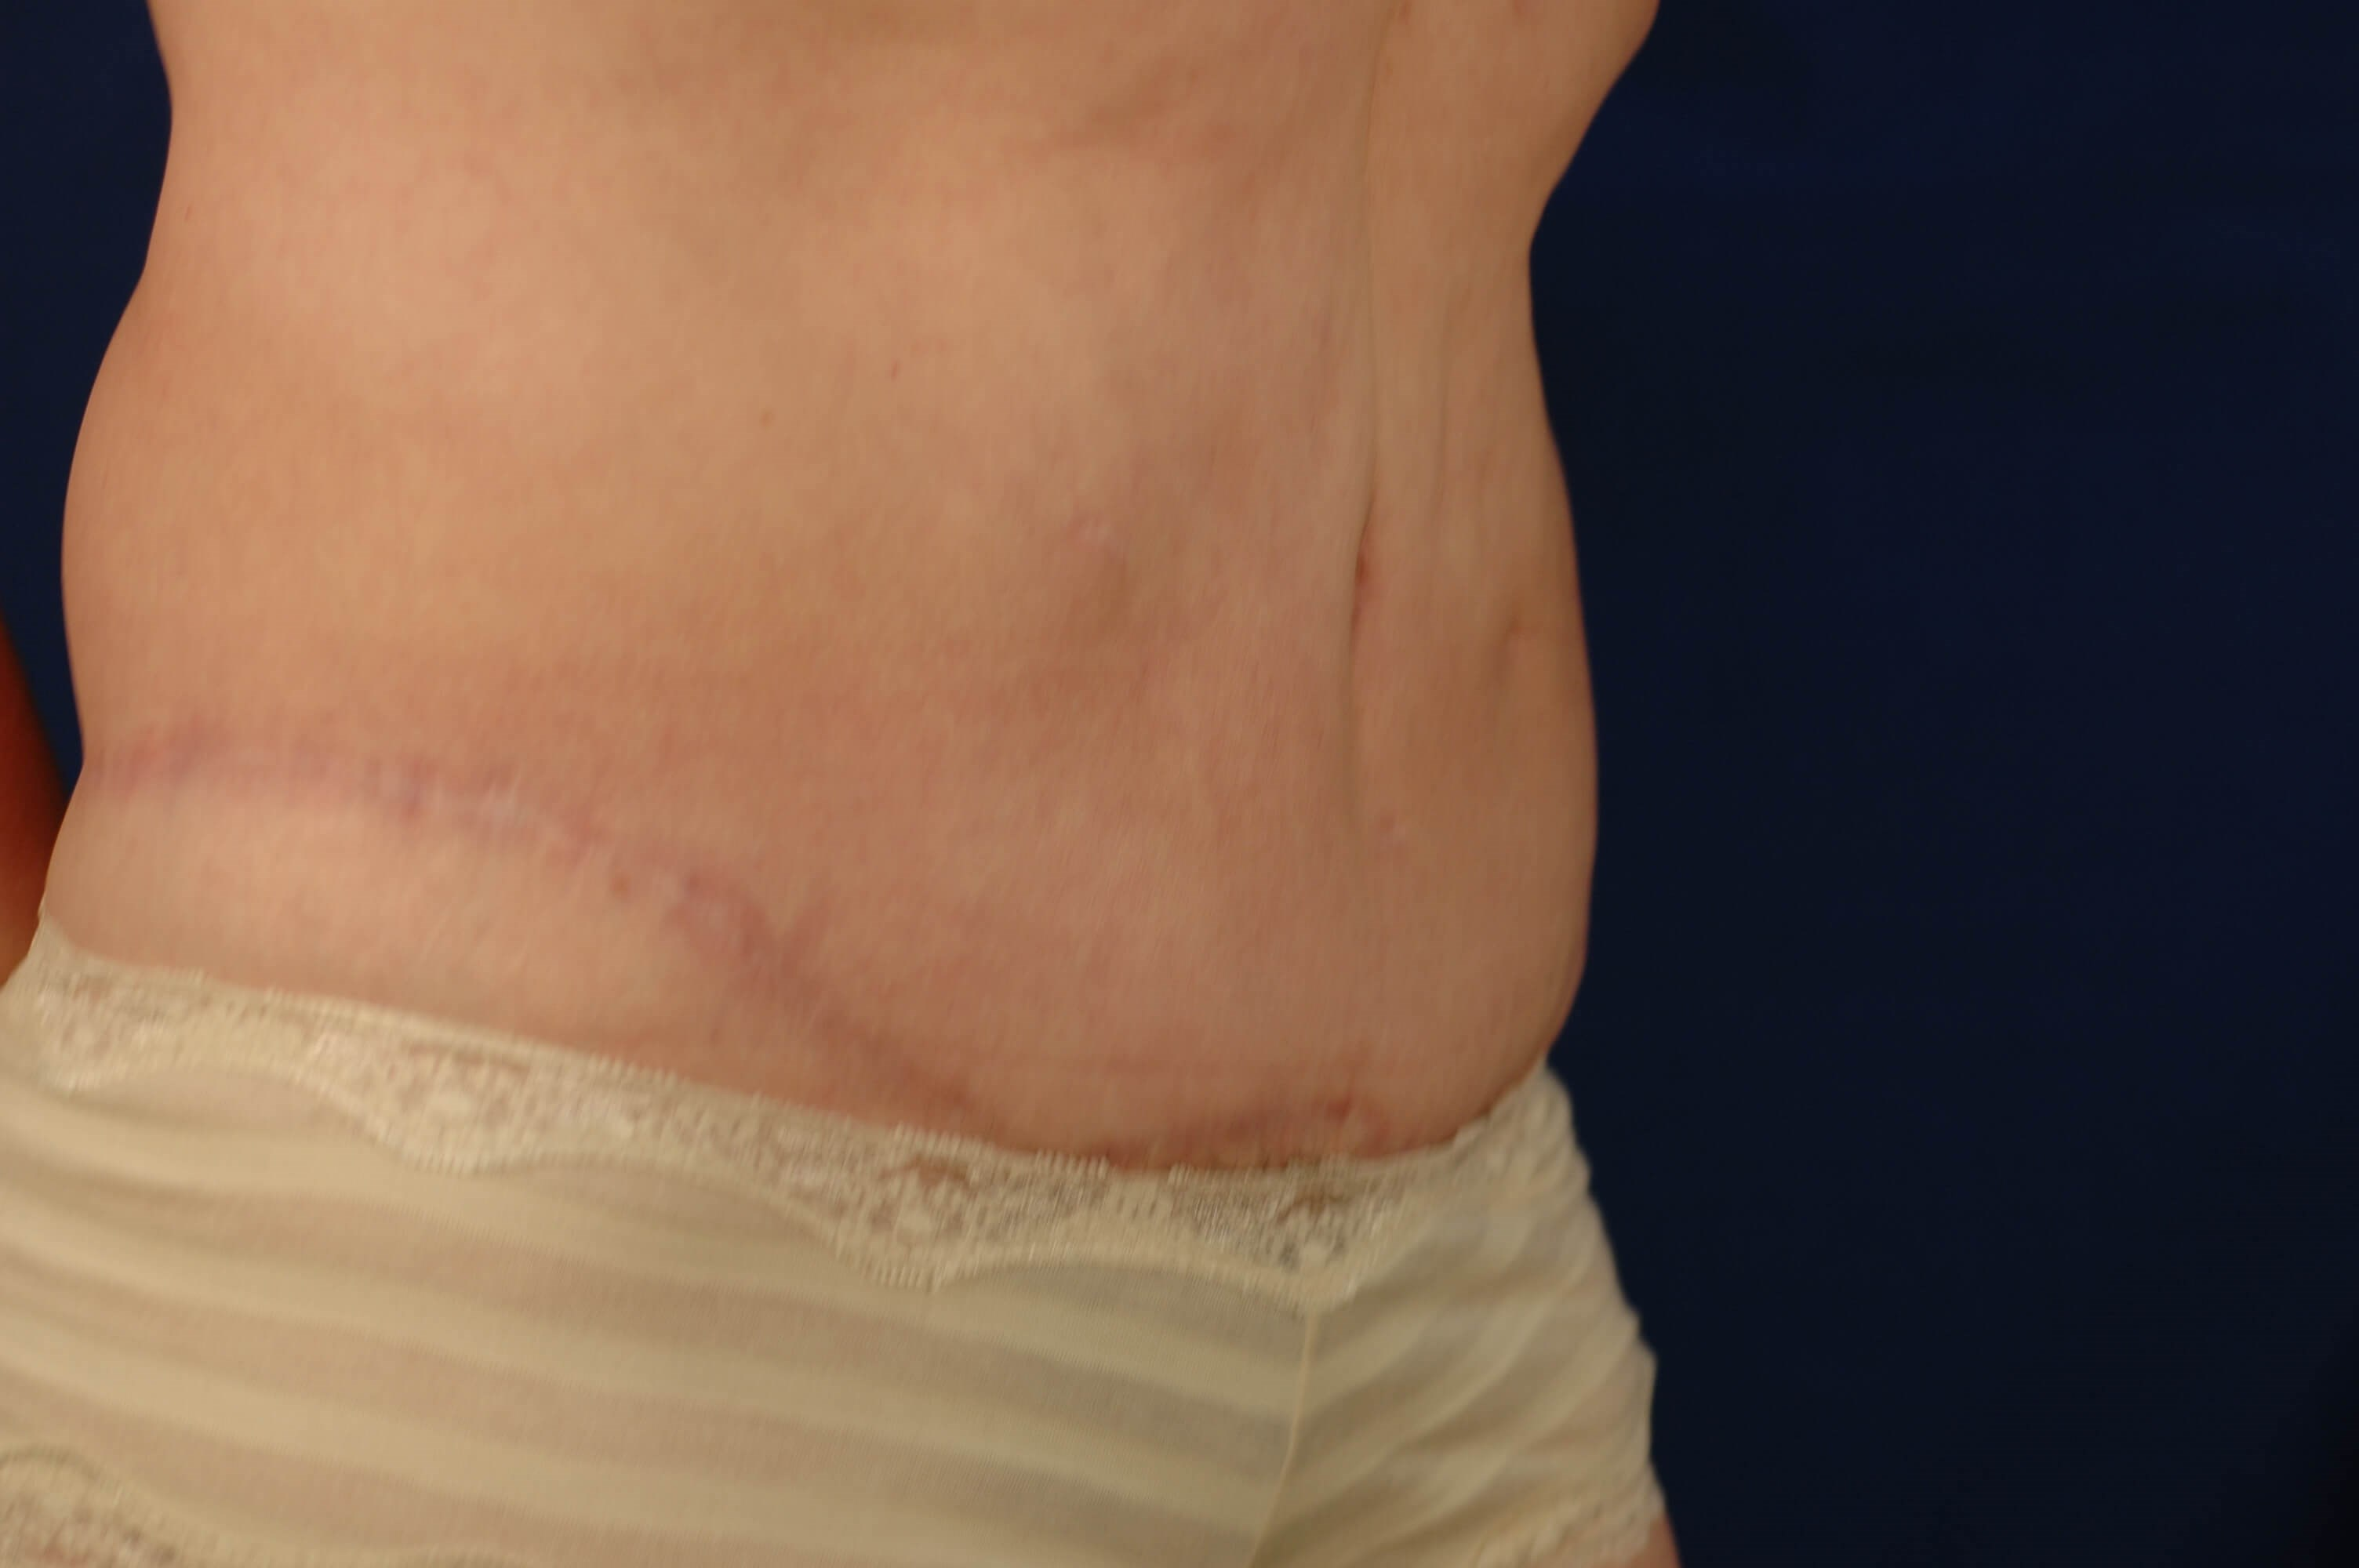 Newport Beach Post Weight Loss Oblique View After